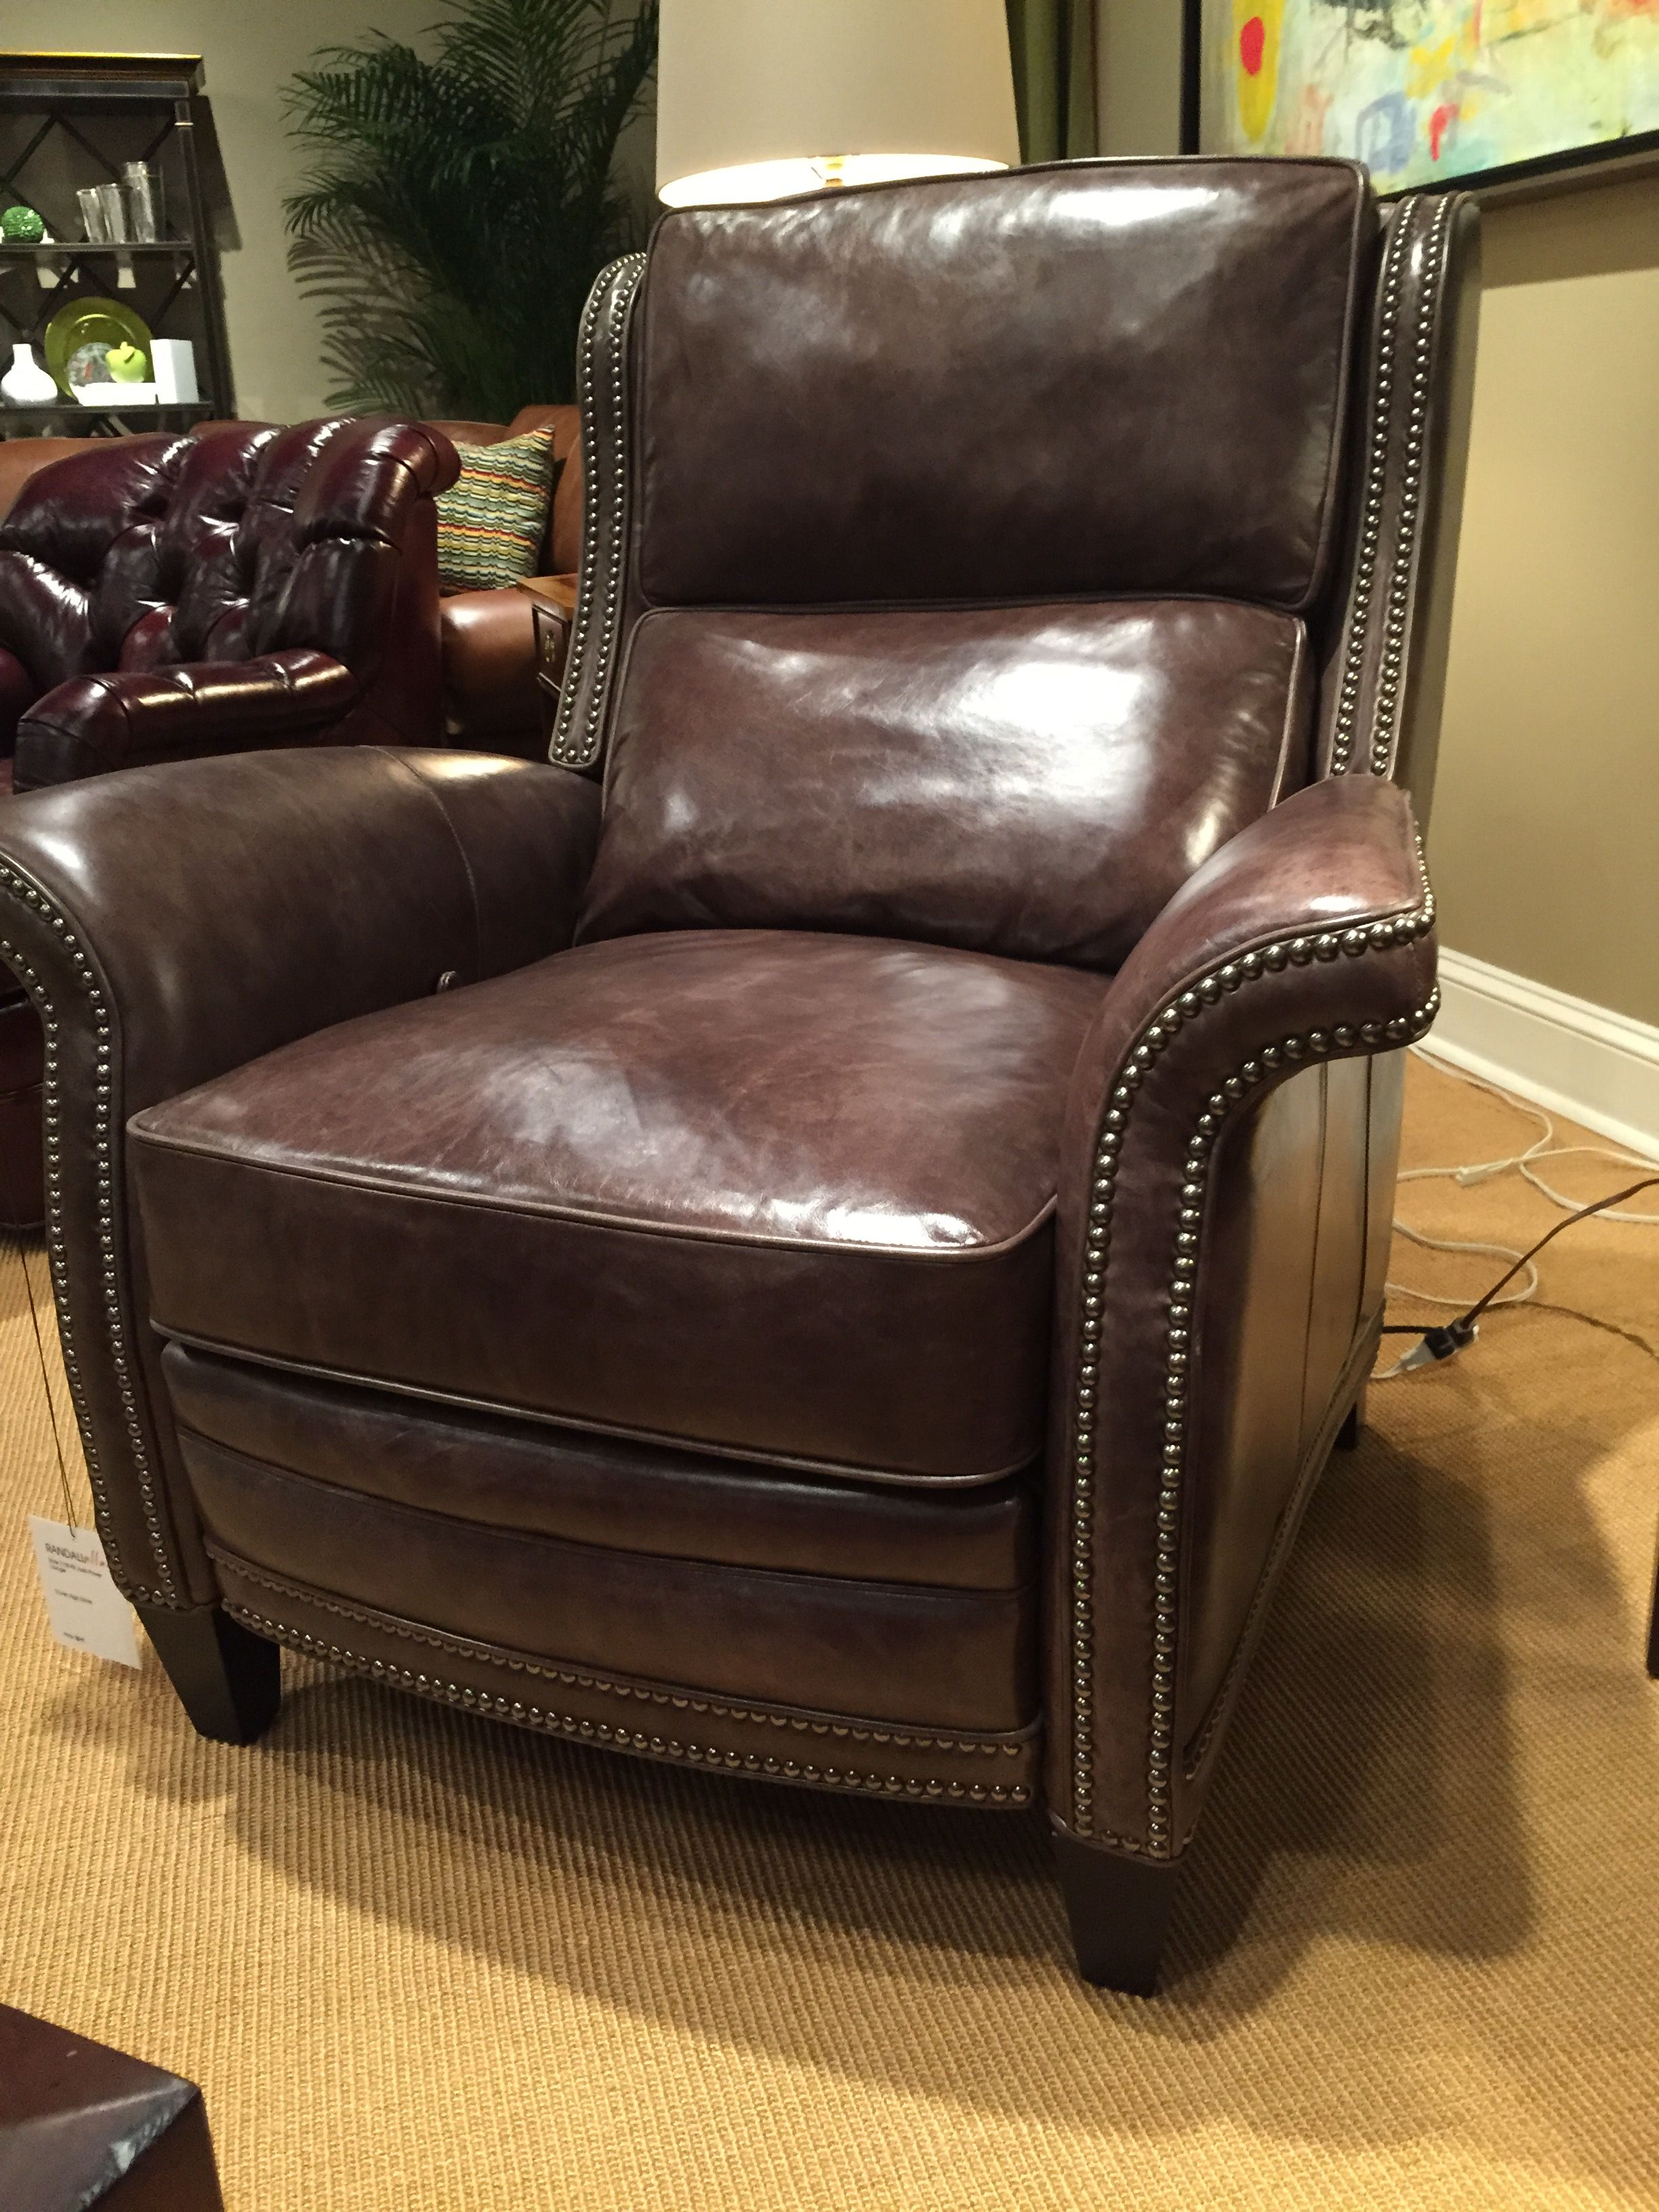 Explore Furniture Market, High Point, And More! Lovely Randall Allen Piece